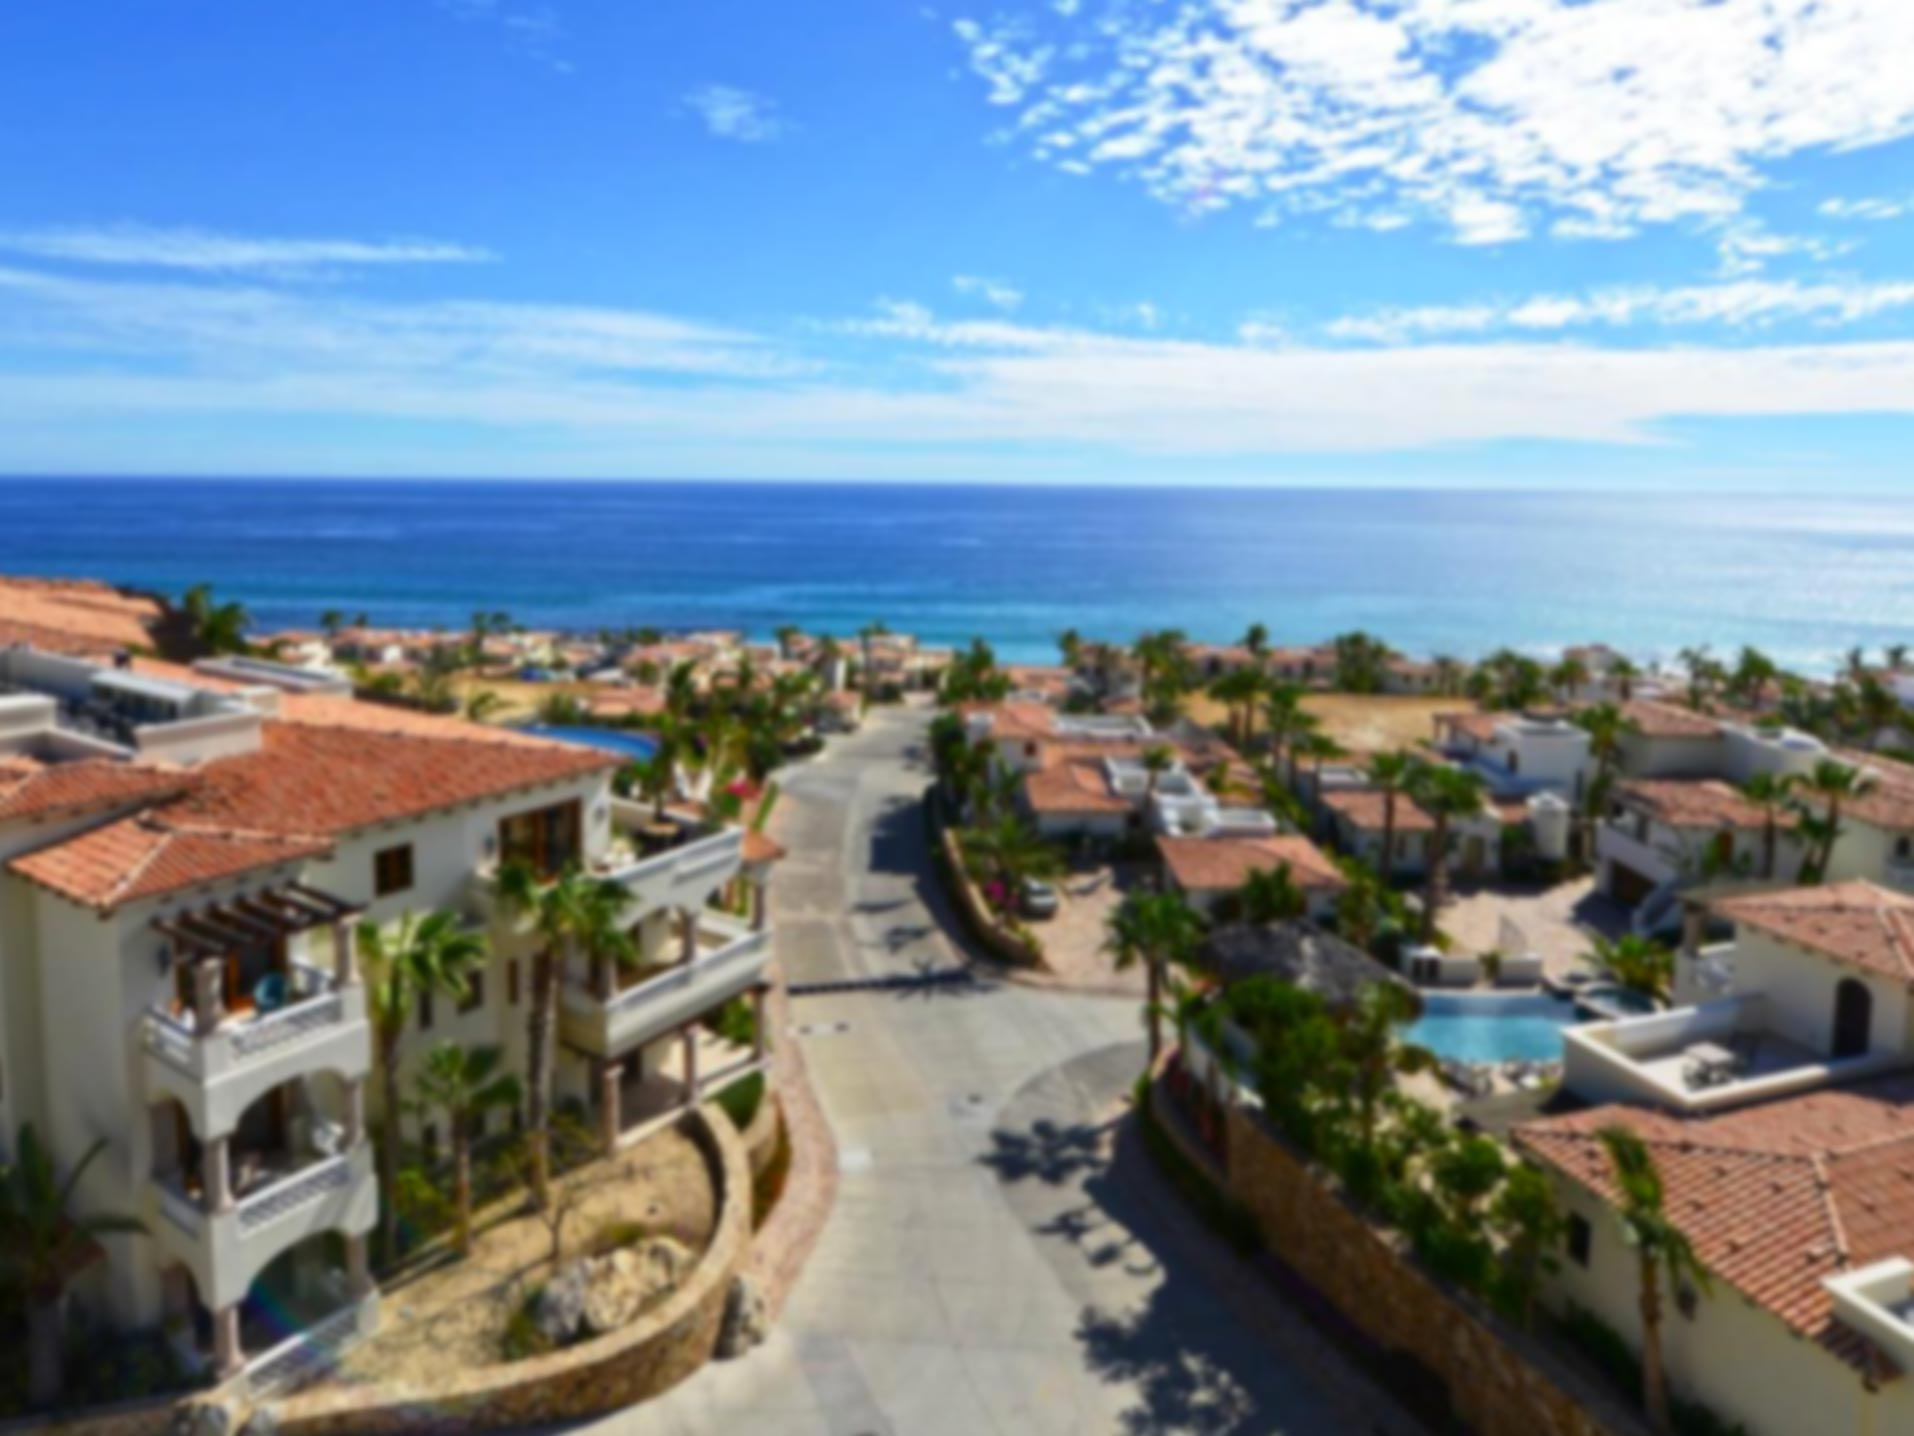 Los Cabos hurricane shutters